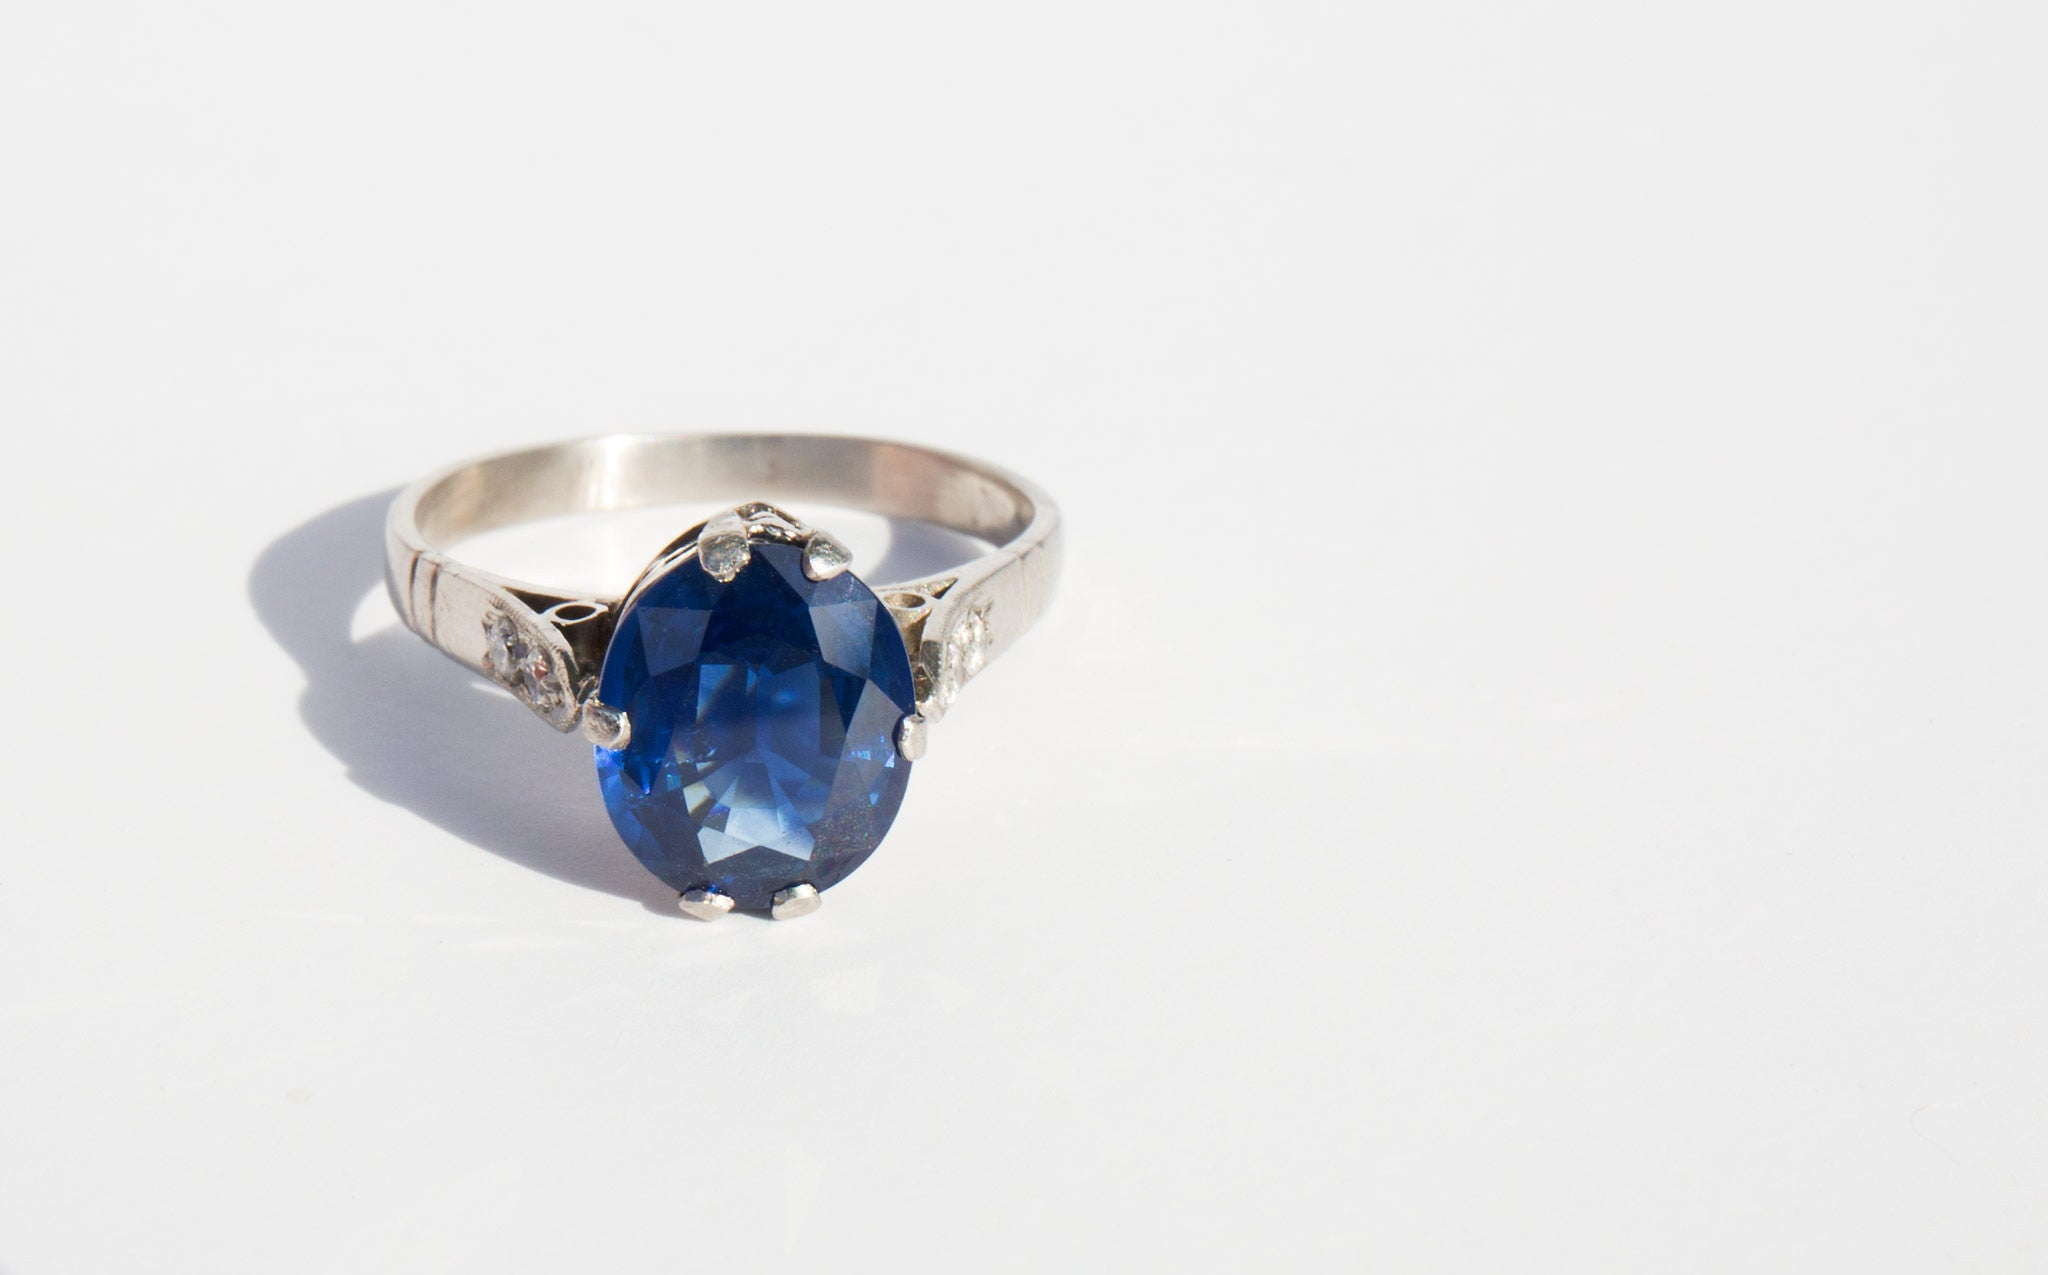 3ct Sapphire and Platinum Ring